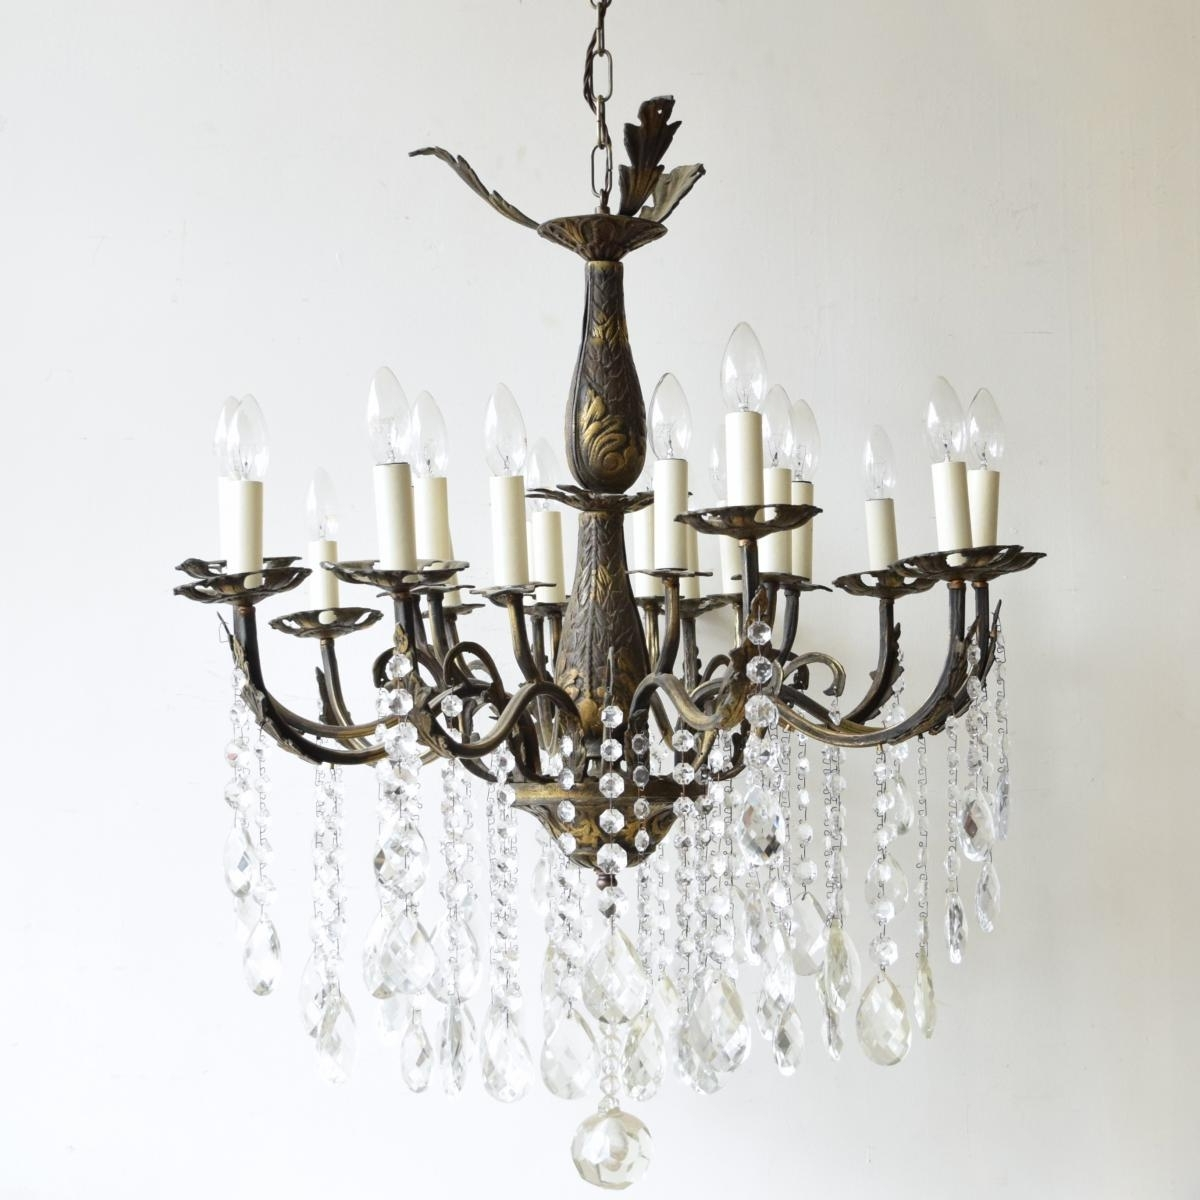 Old Brass Chandeliers With Regard To Well Liked Large Vintage French 16 Light Brass Chandelier For Sale At Pamono (View 18 of 20)